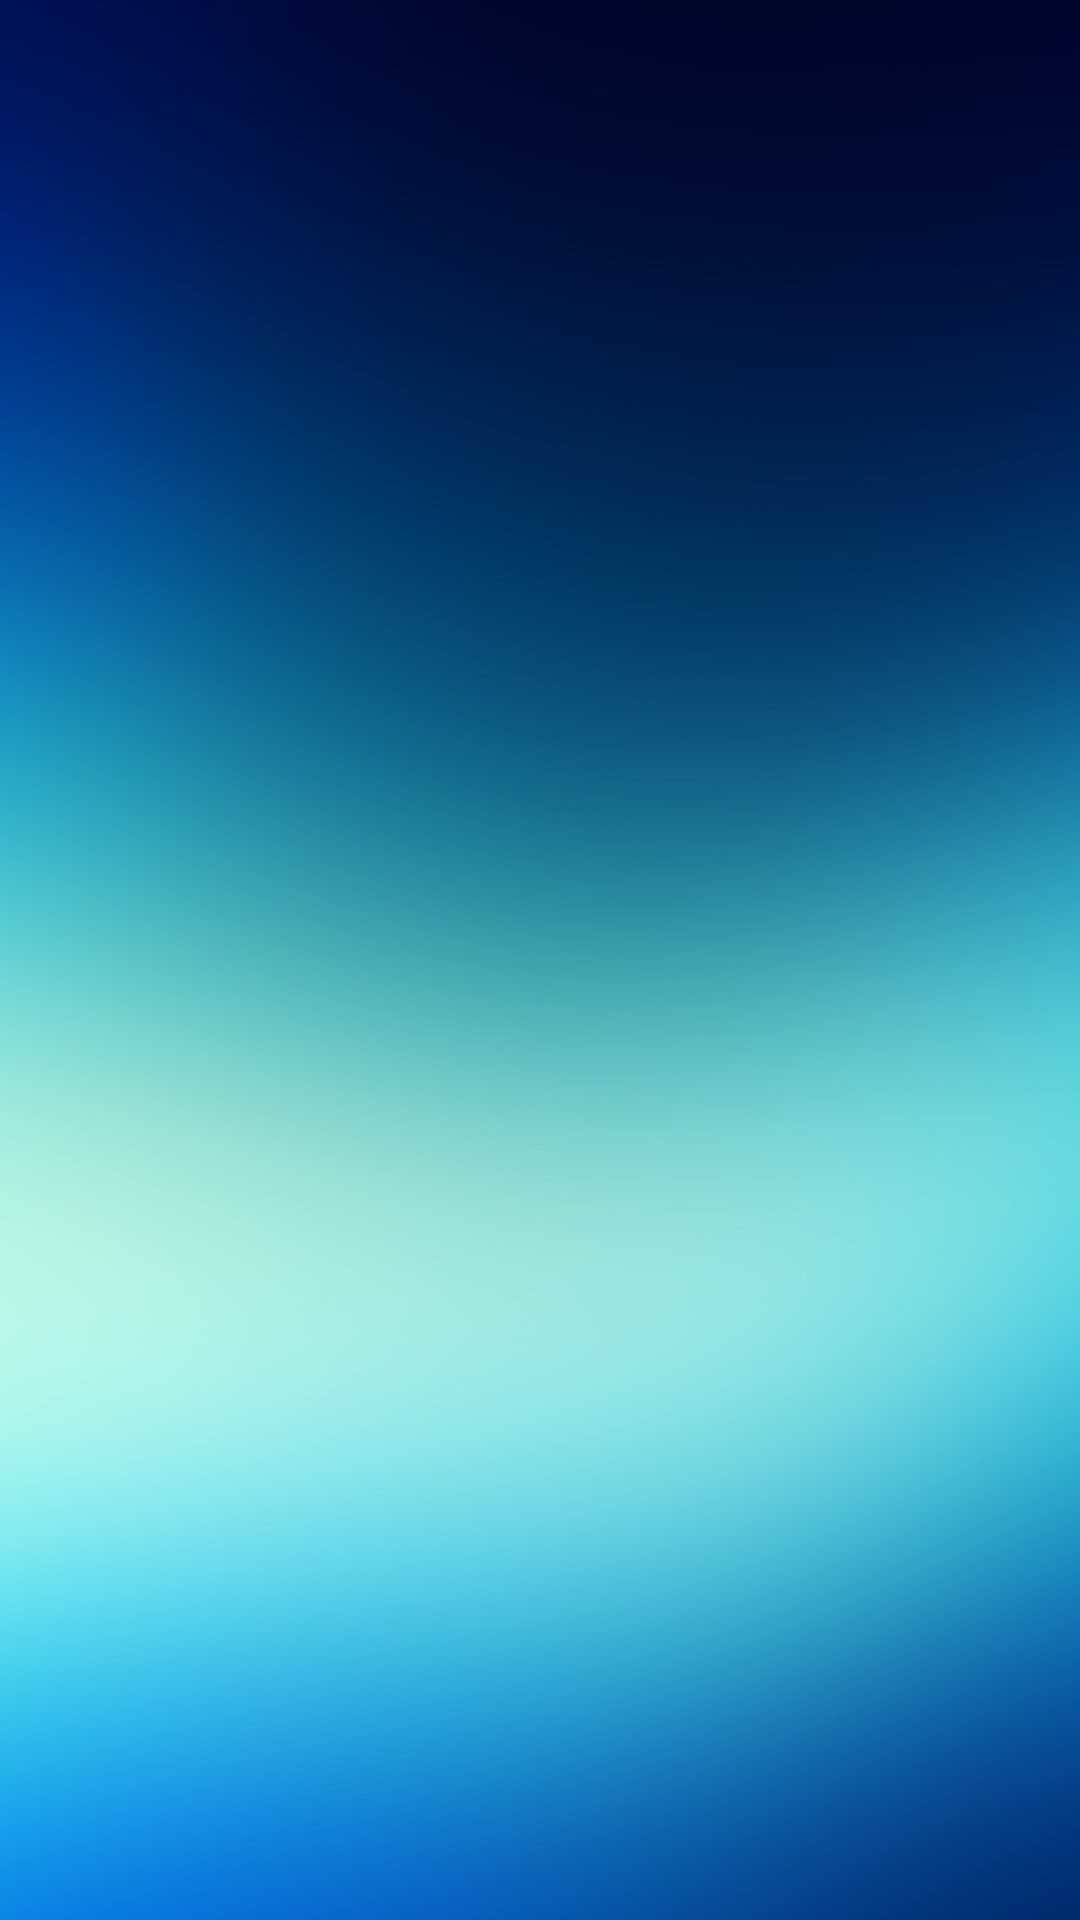 Res: 1080x1920, Blue Ombre Wallpaper Desktop Of Androids Hd Pics